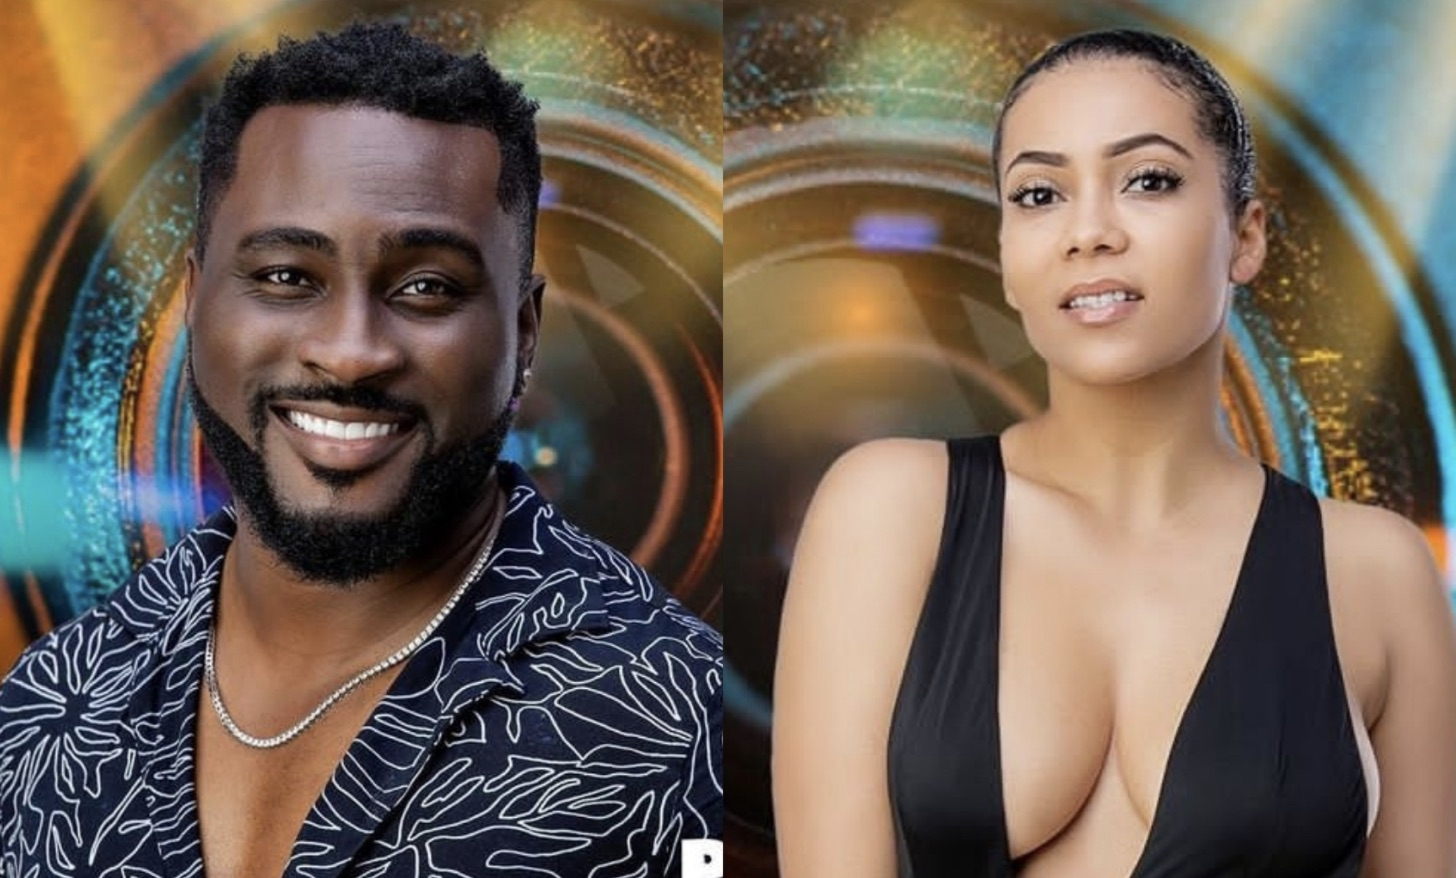 Pere and Maria are the wildcards that evaded detection by BBNaija Housemates